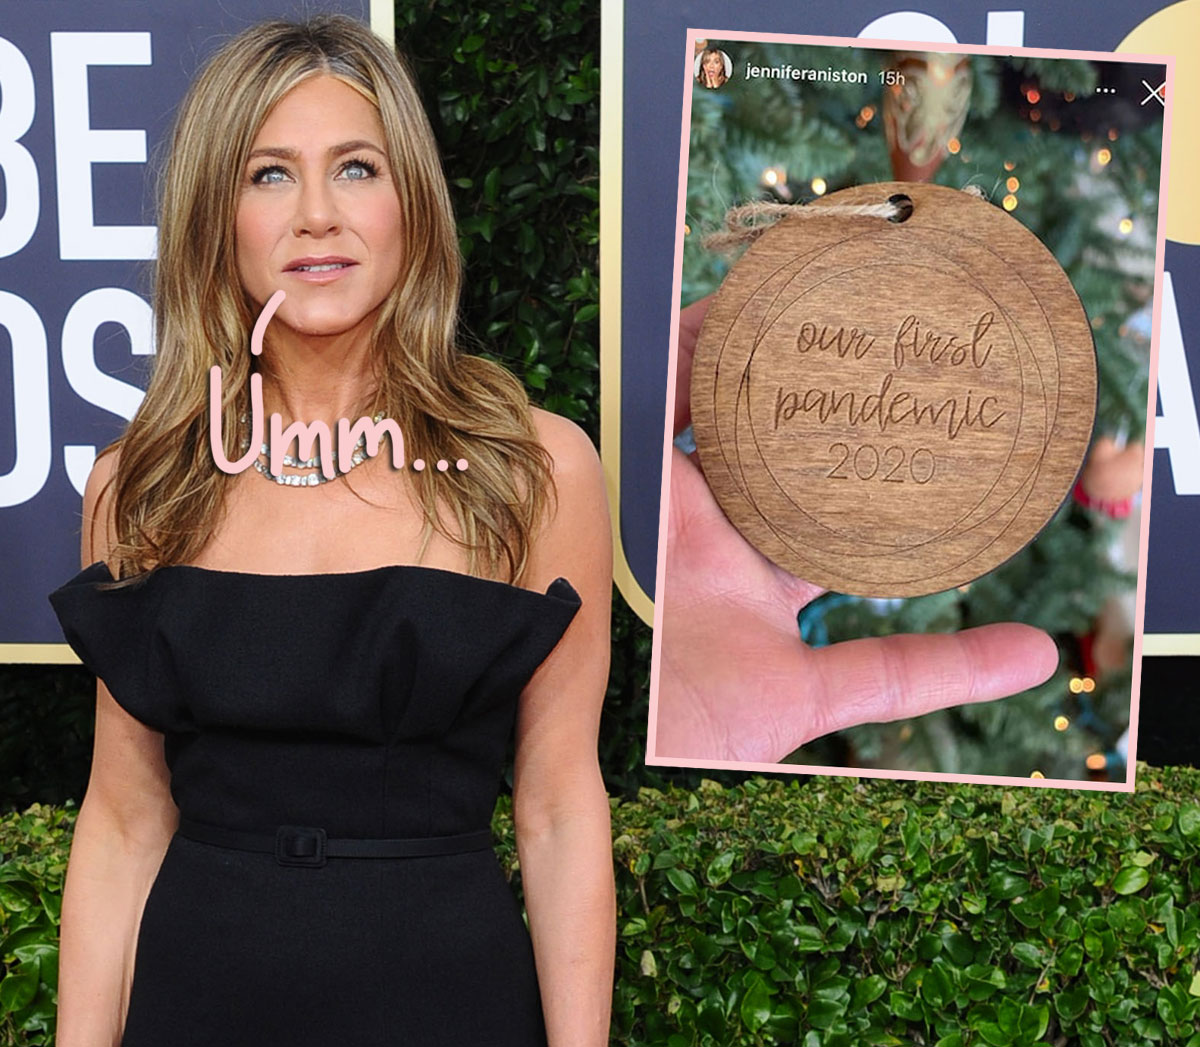 VOTE: Are You Offended By Jennifer Aniston's 'Our First Pandemic' Christmas Ornament?